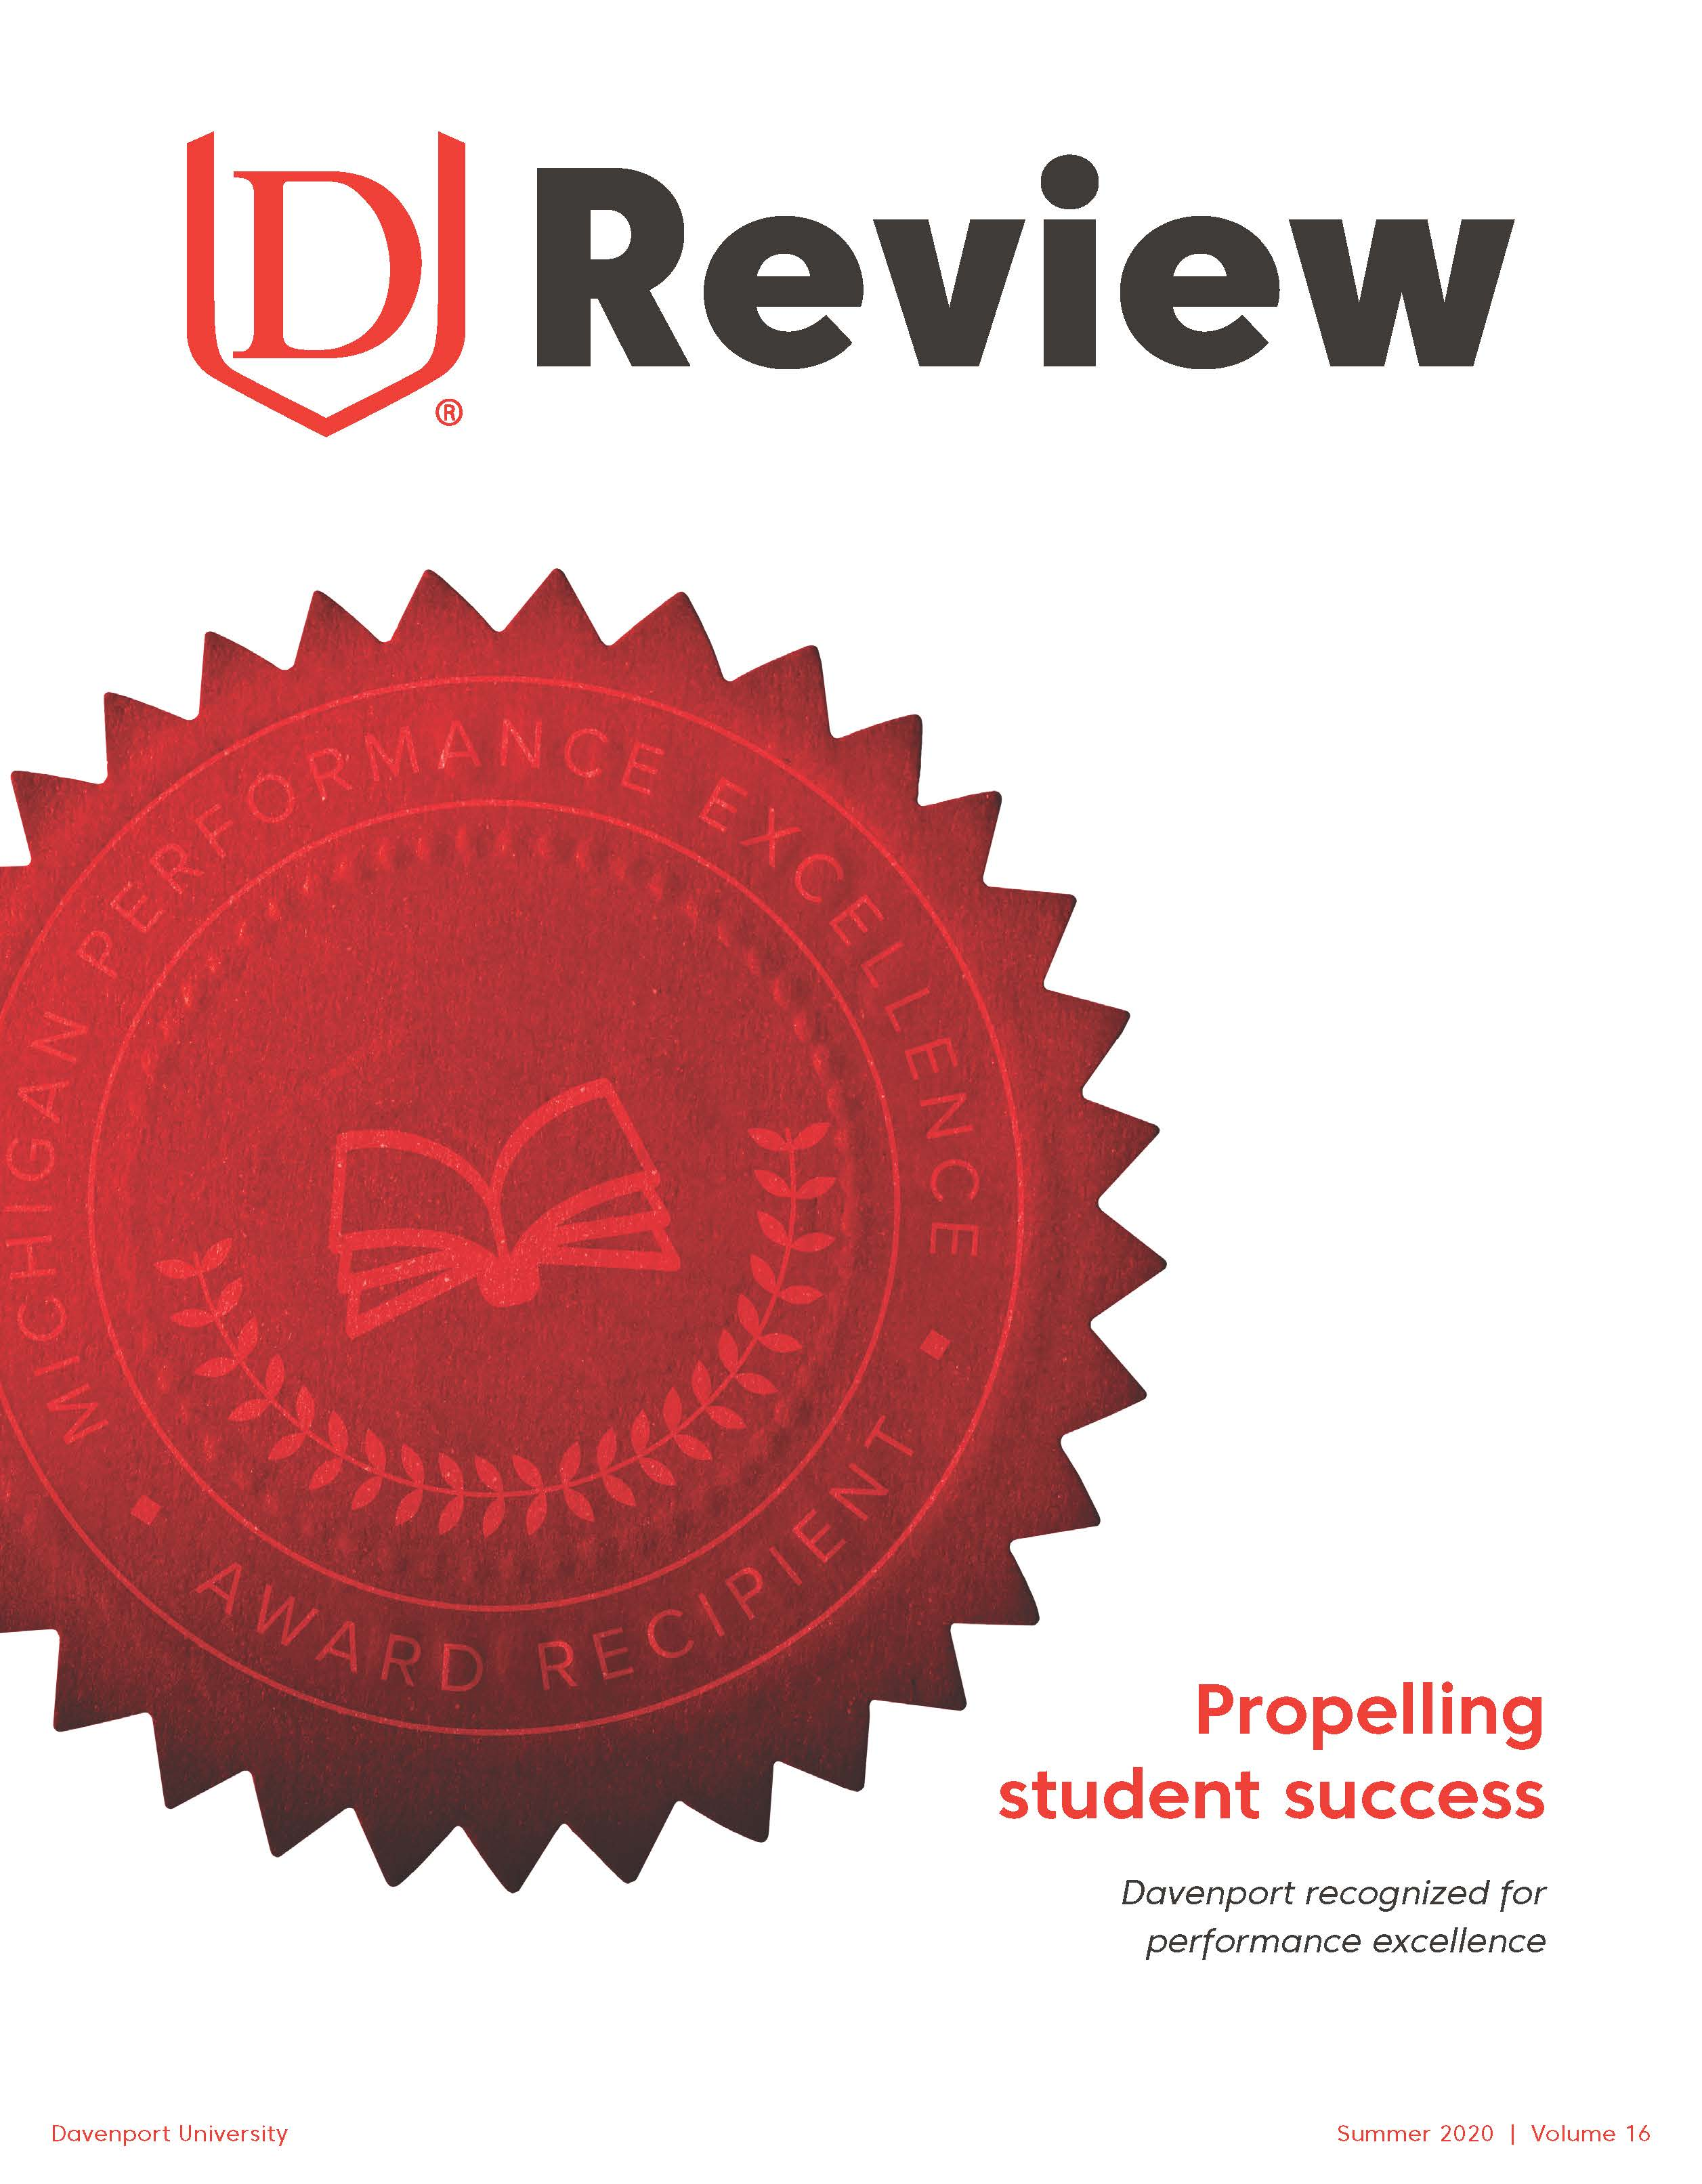 DU Review Summer 2020 Cover